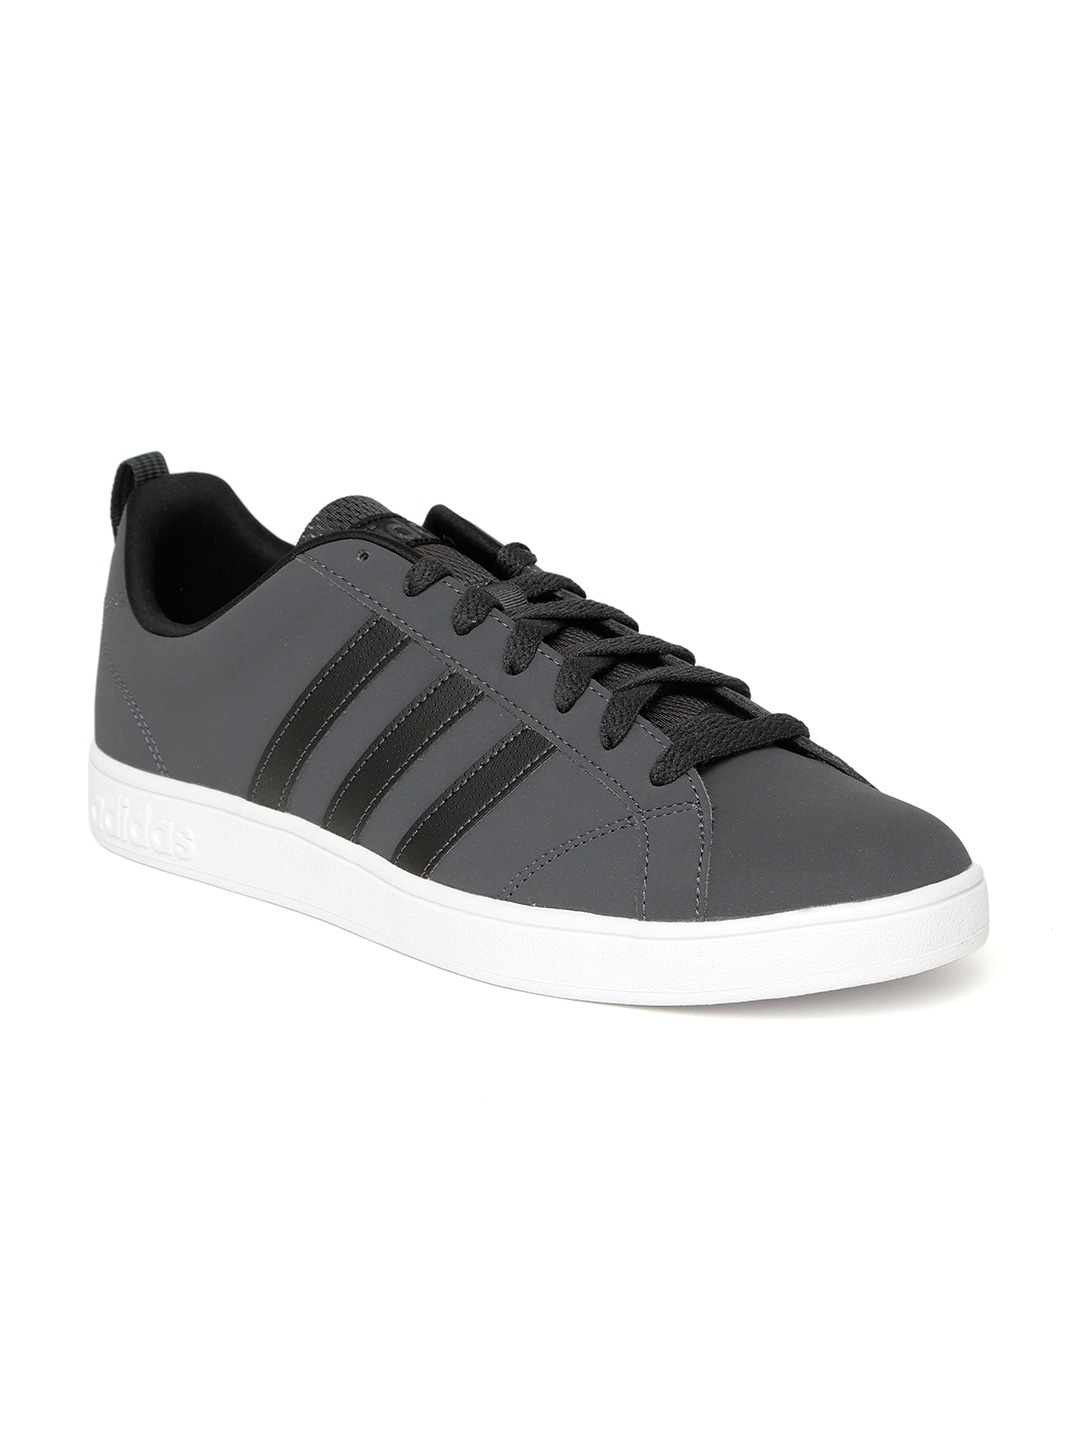 c89bd5b2e47a0 Adidas Shoes - Buy Adidas Shoes for Men   Women Online - Myntra